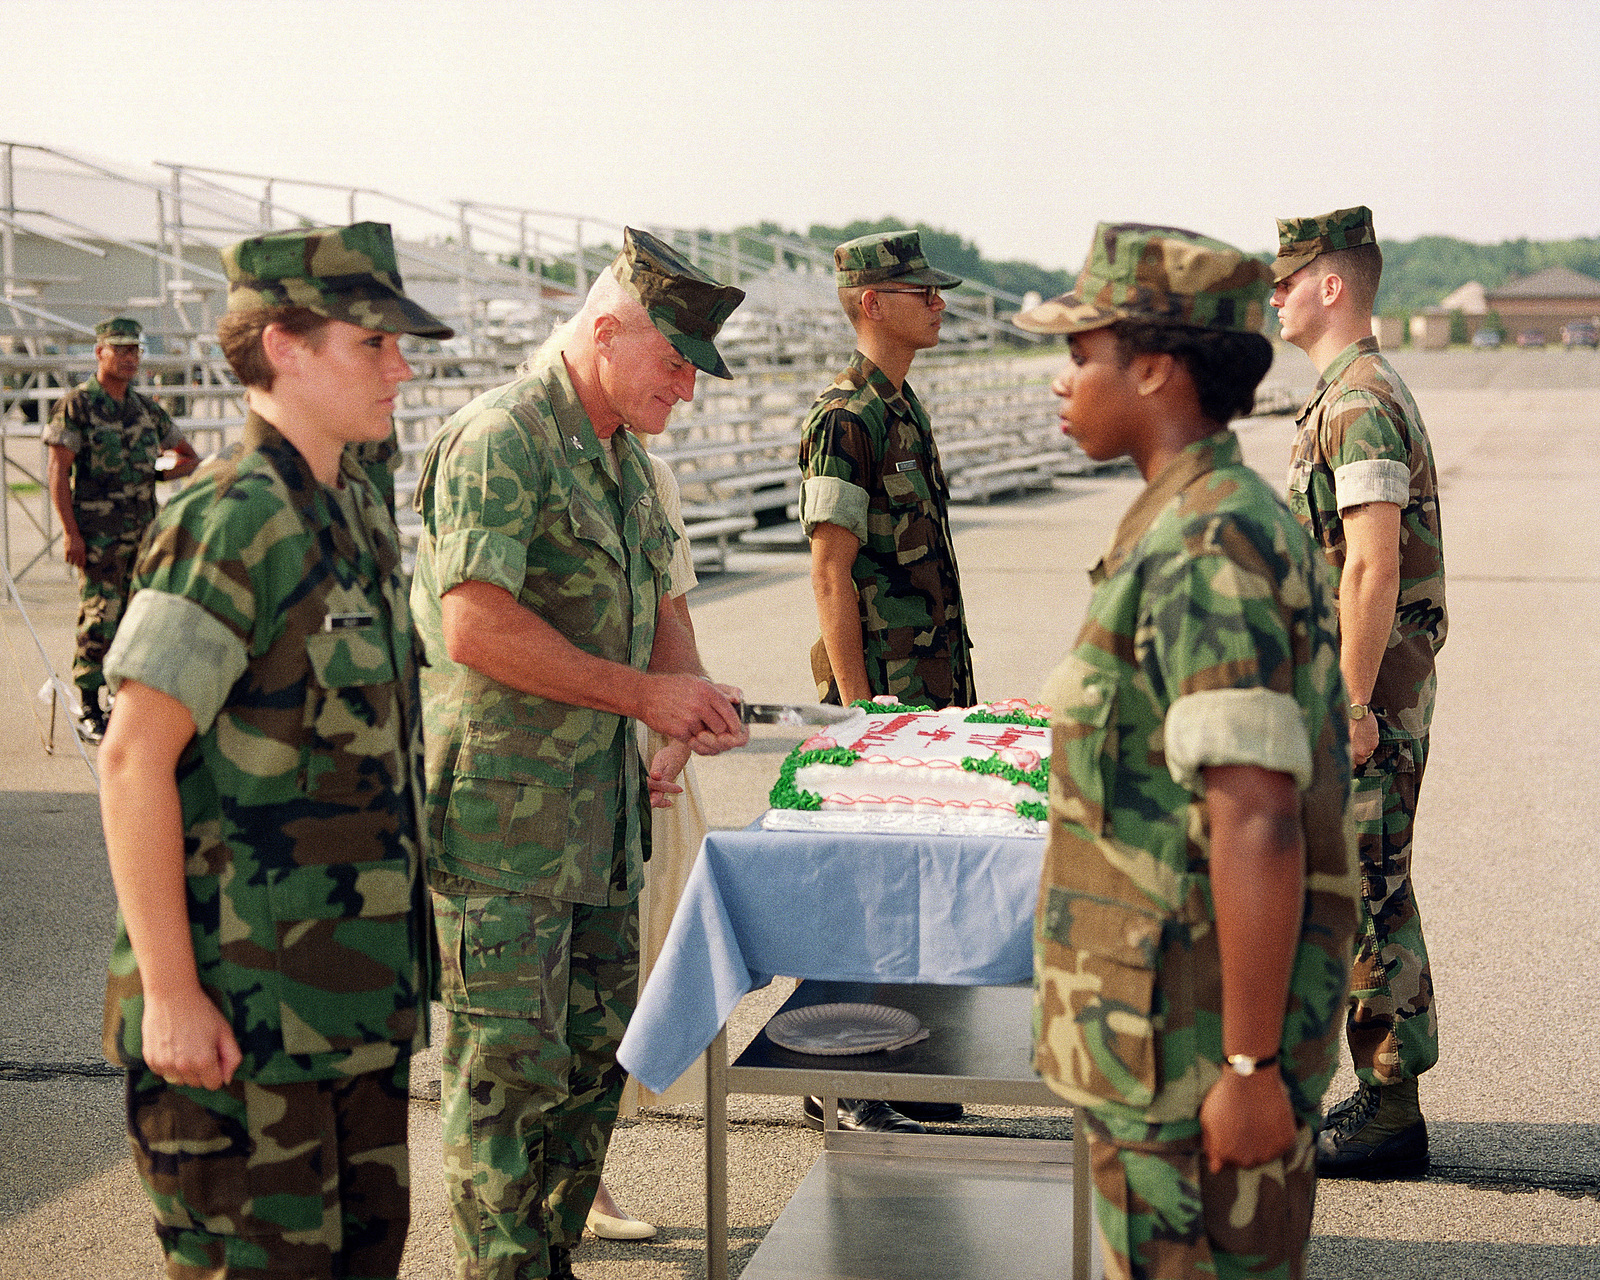 Medal of Honor recipient Colonel (COL) Wesley L. Fox cuts a cake during a celebration of the 40th anniversary of his entry into the Marine Corps. COL Fox enlisted in the Marines on August 4, 1950, and received his commission as an officer on May 27, 1966